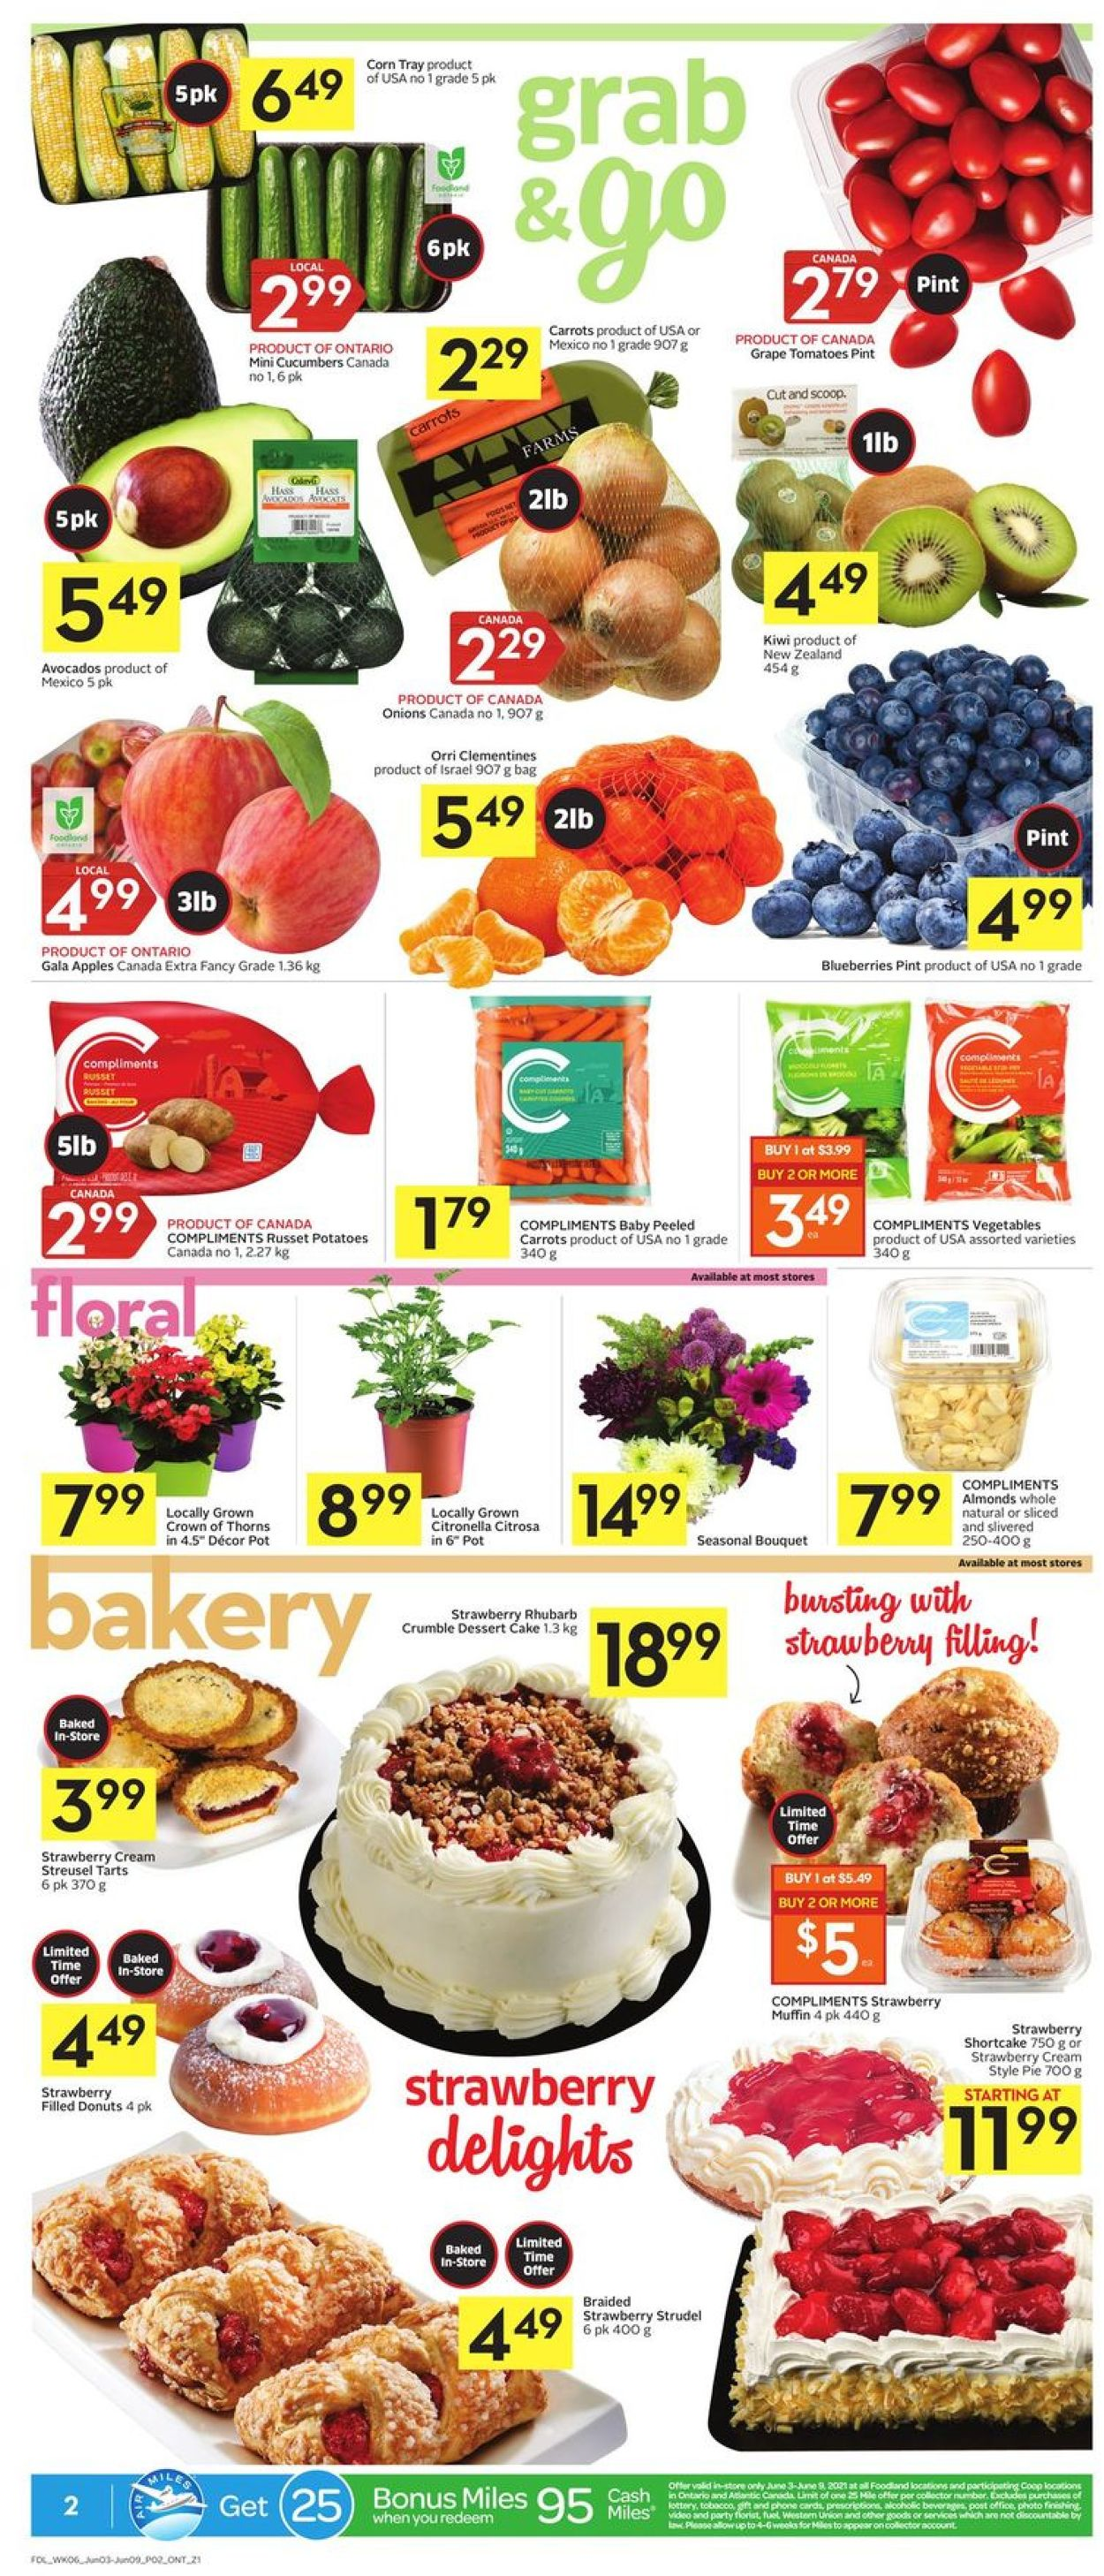 Foodland Flyer - 06/03-06/09/2021 (Page 2)